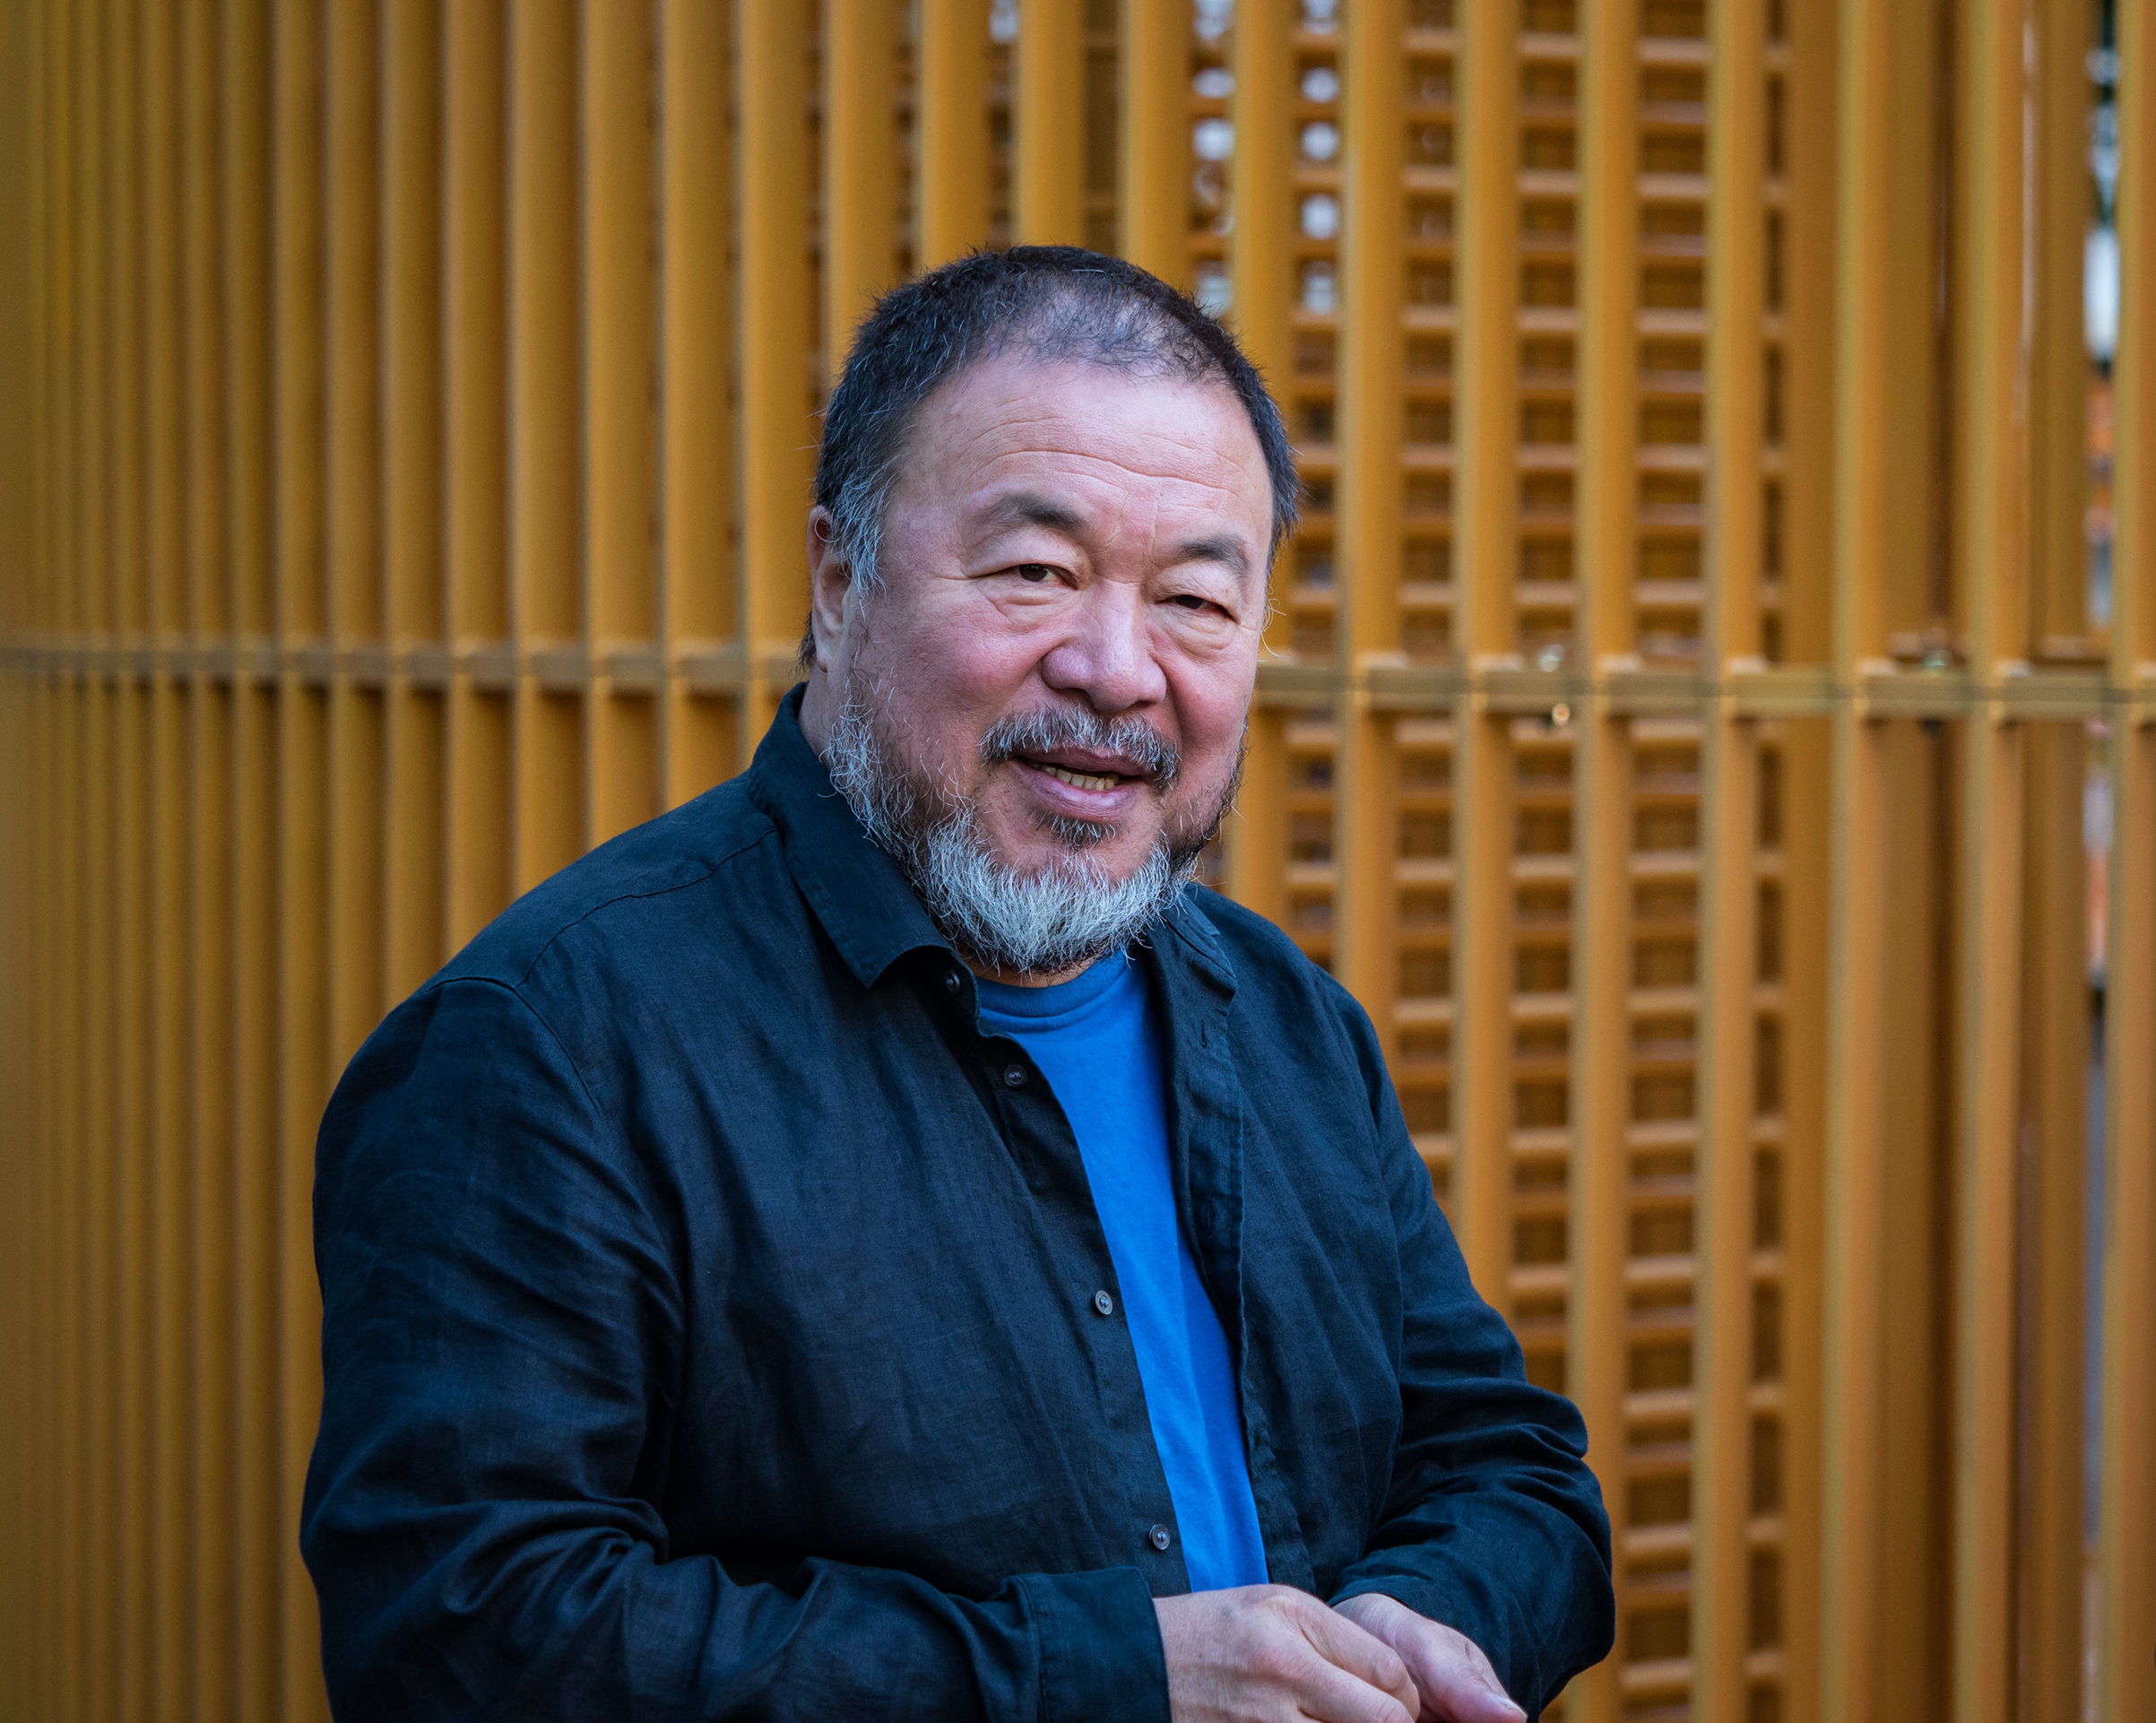 Chinese contemporary artist and activist Ai Weiwei attends the news conference for his instillation 'Good Fences Make Good Neighbors,' in Manhattan on Oct. 10, 2017.